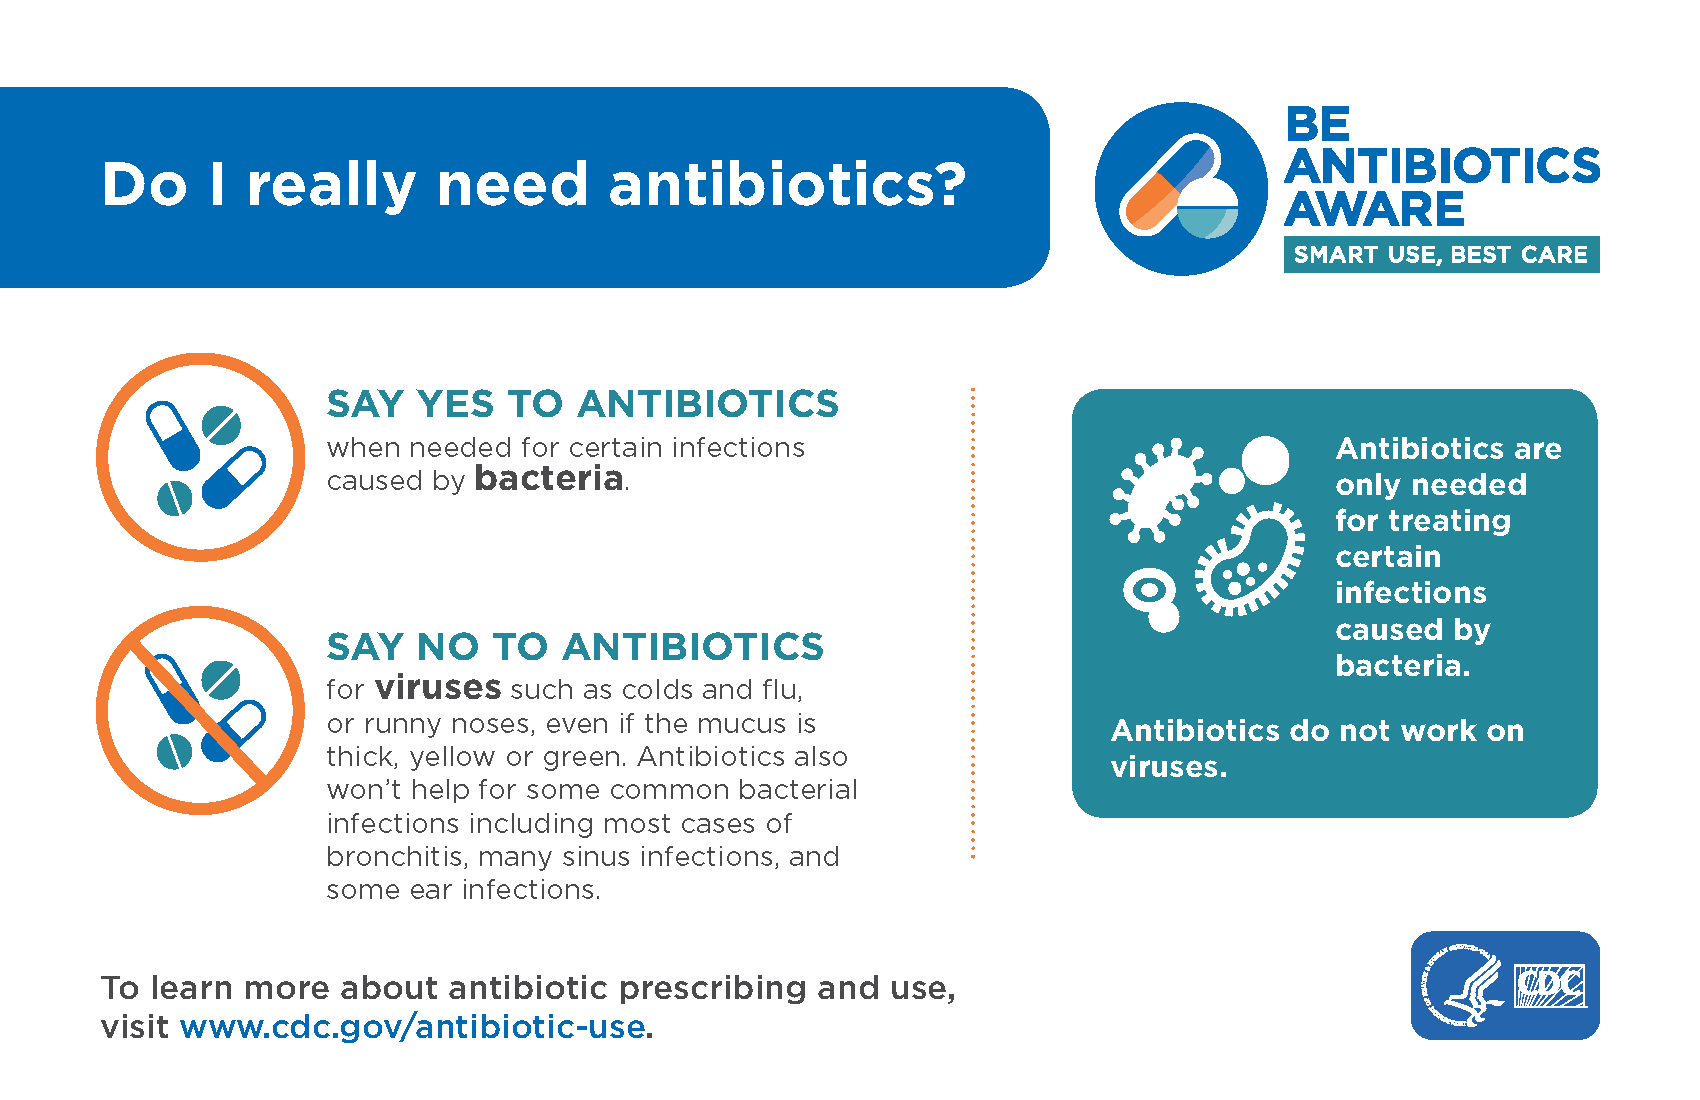 what do you think would happen if all antibiotics stopped working?